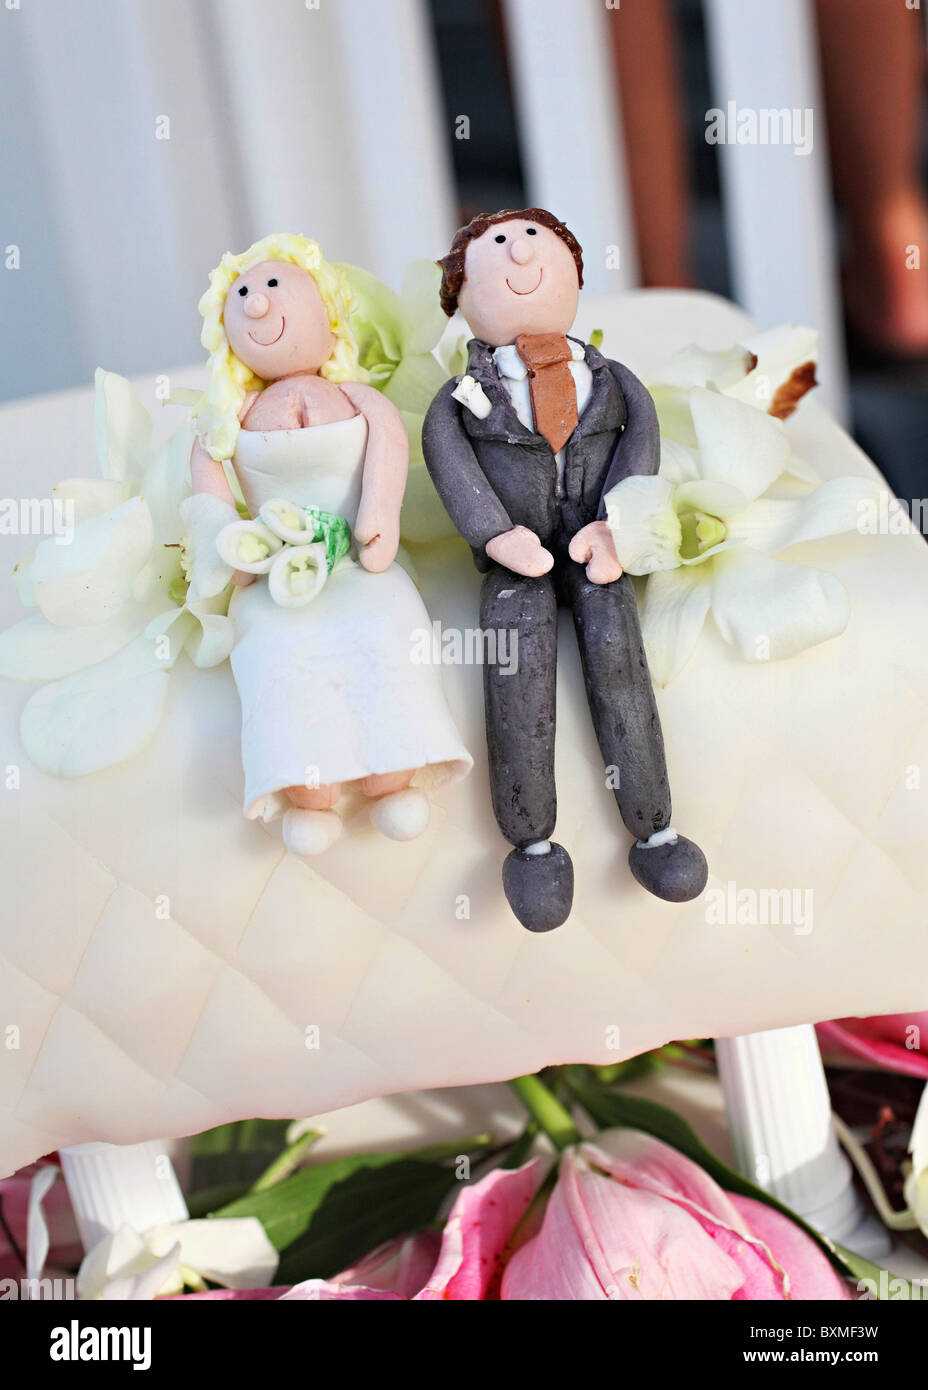 Wedding Cake Topper Stock Photos Wedding Cake Topper Stock Images